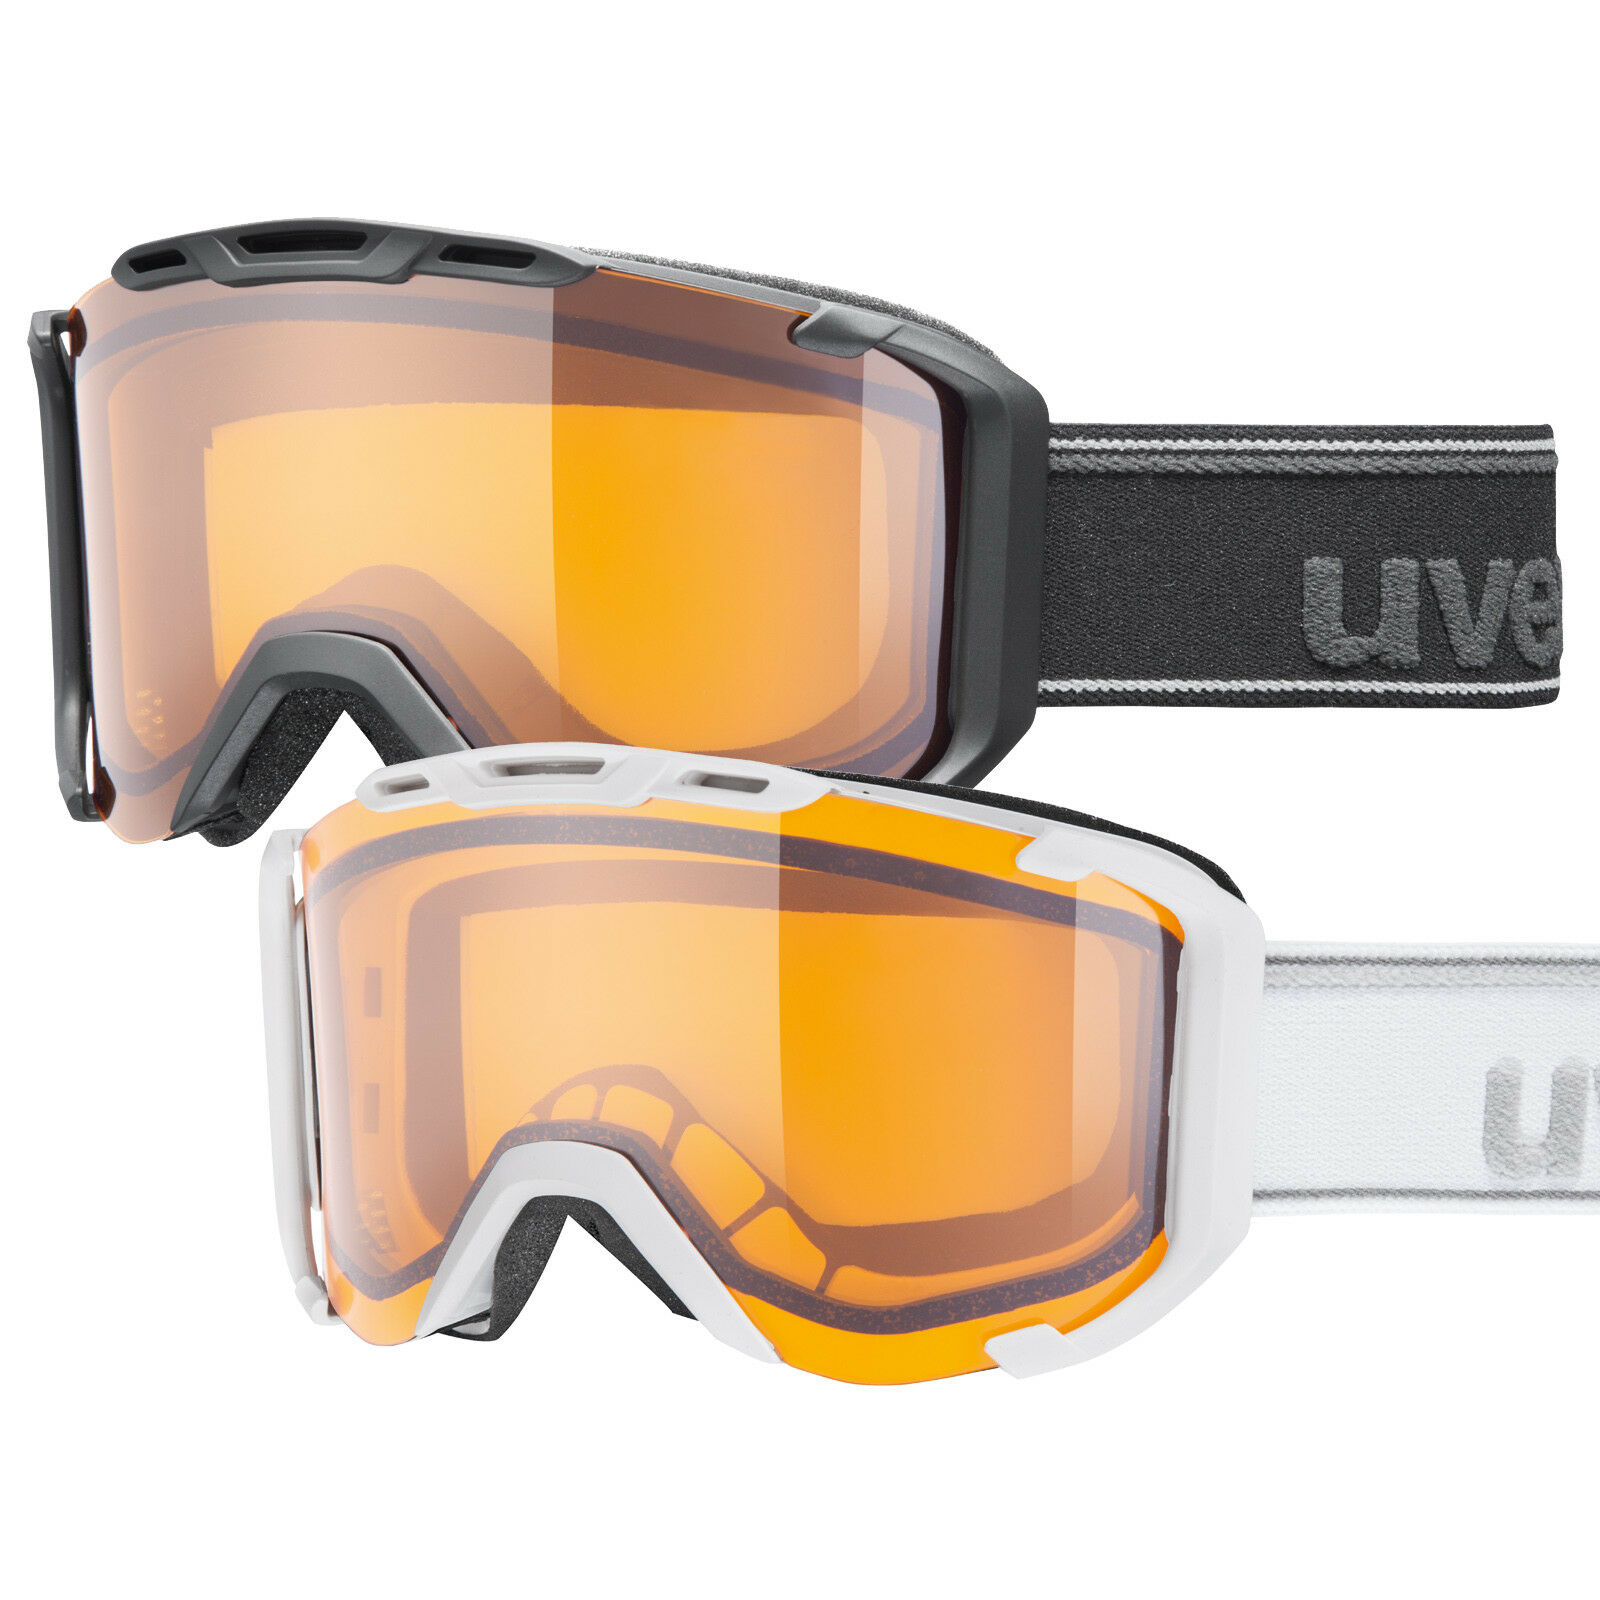 Uvex Snow Strike Lgl Ski Goggles Performance